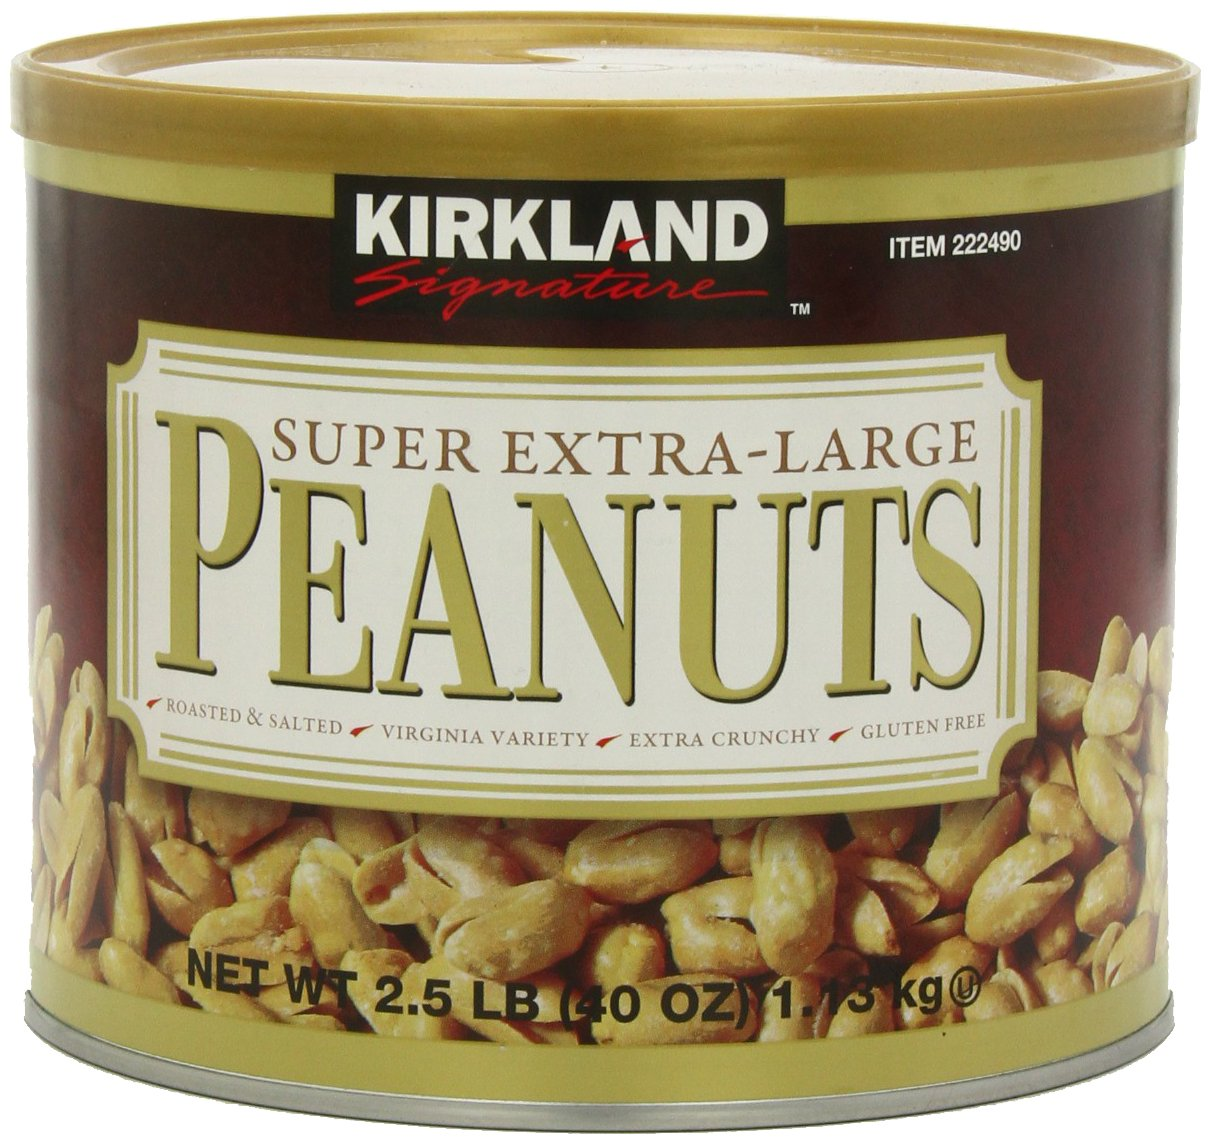 Kirkland Signature Super XL VA Peanuts, 40 Ounce, Light Brown